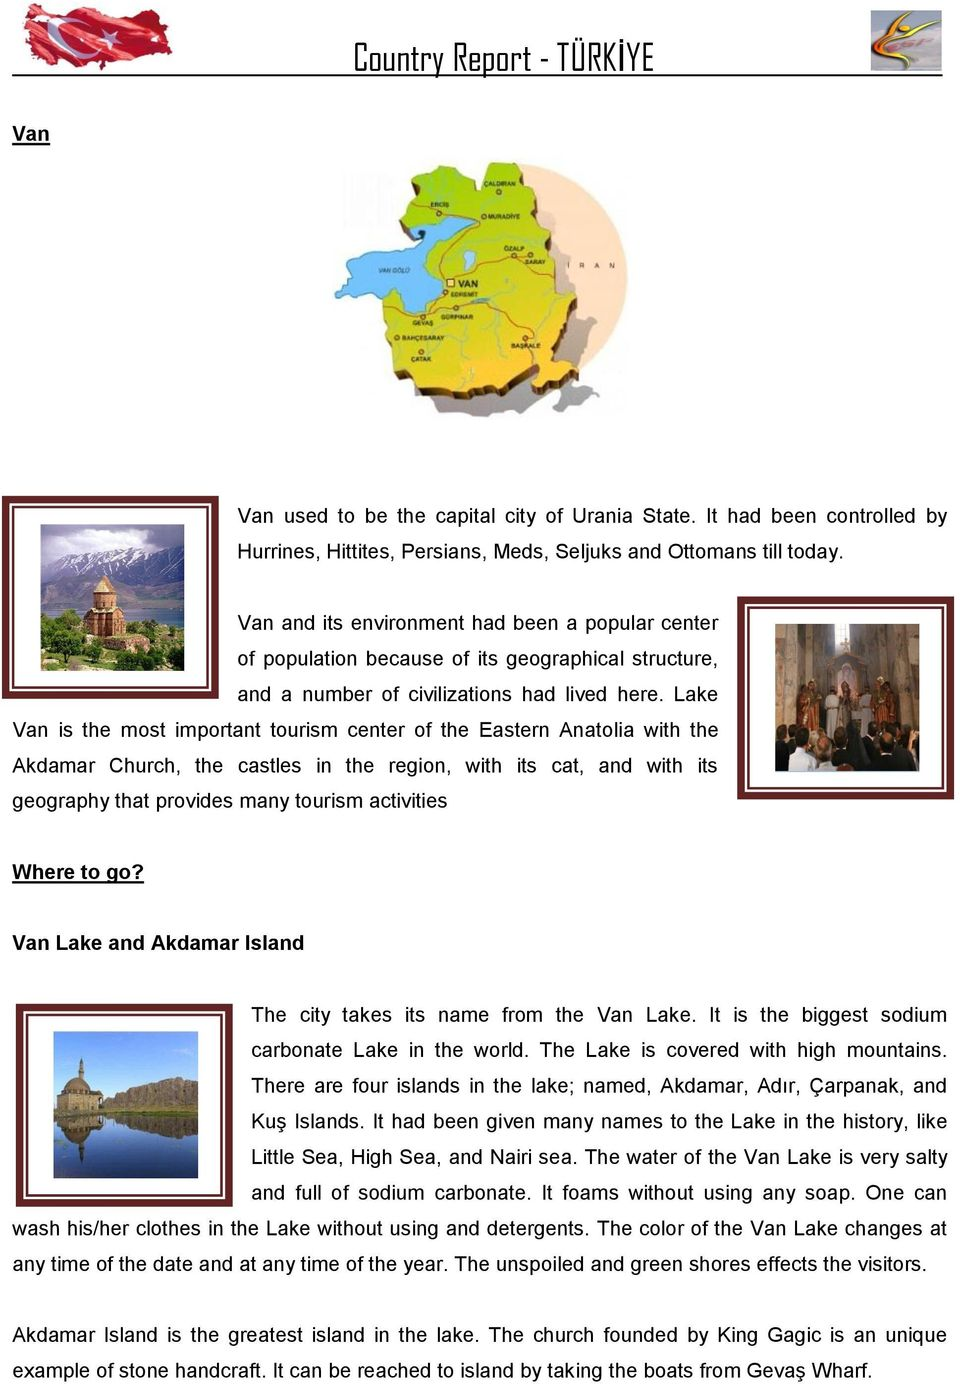 Lake Van is the most important tourism center of the Eastern Anatolia with the Akdamar Church, the castles in the region, with its cat, and with its geography that provides many tourism activities